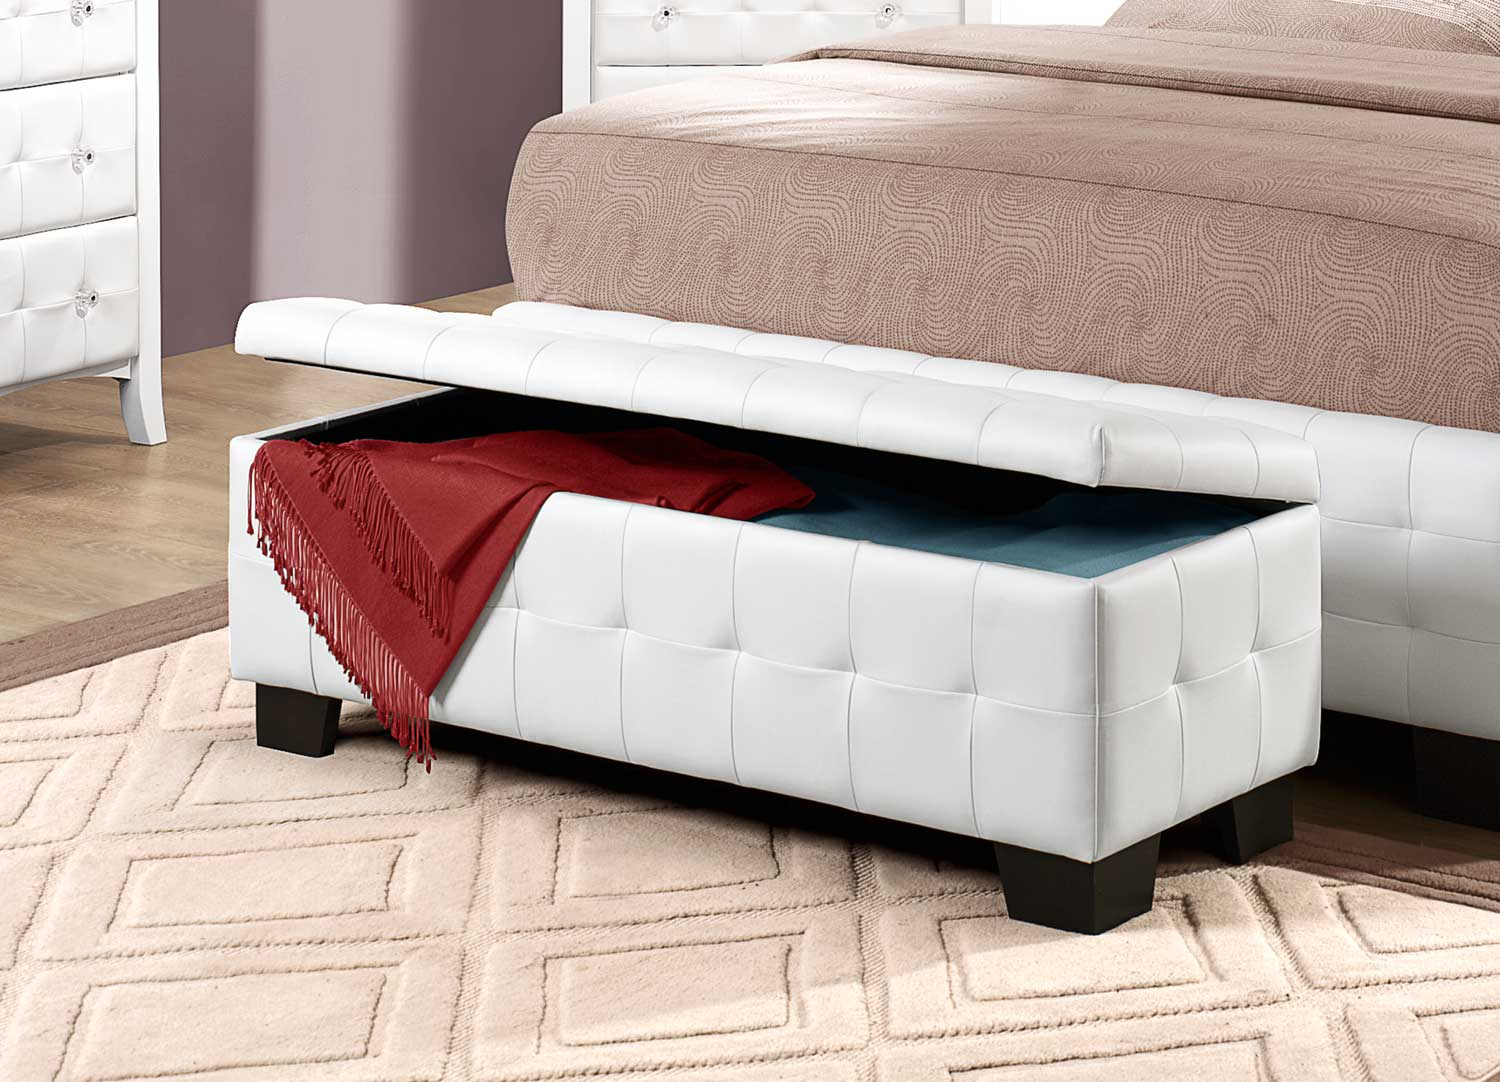 Super White Wood Storage Bench Tufted Royals Courage Ultimate Creativecarmelina Interior Chair Design Creativecarmelinacom